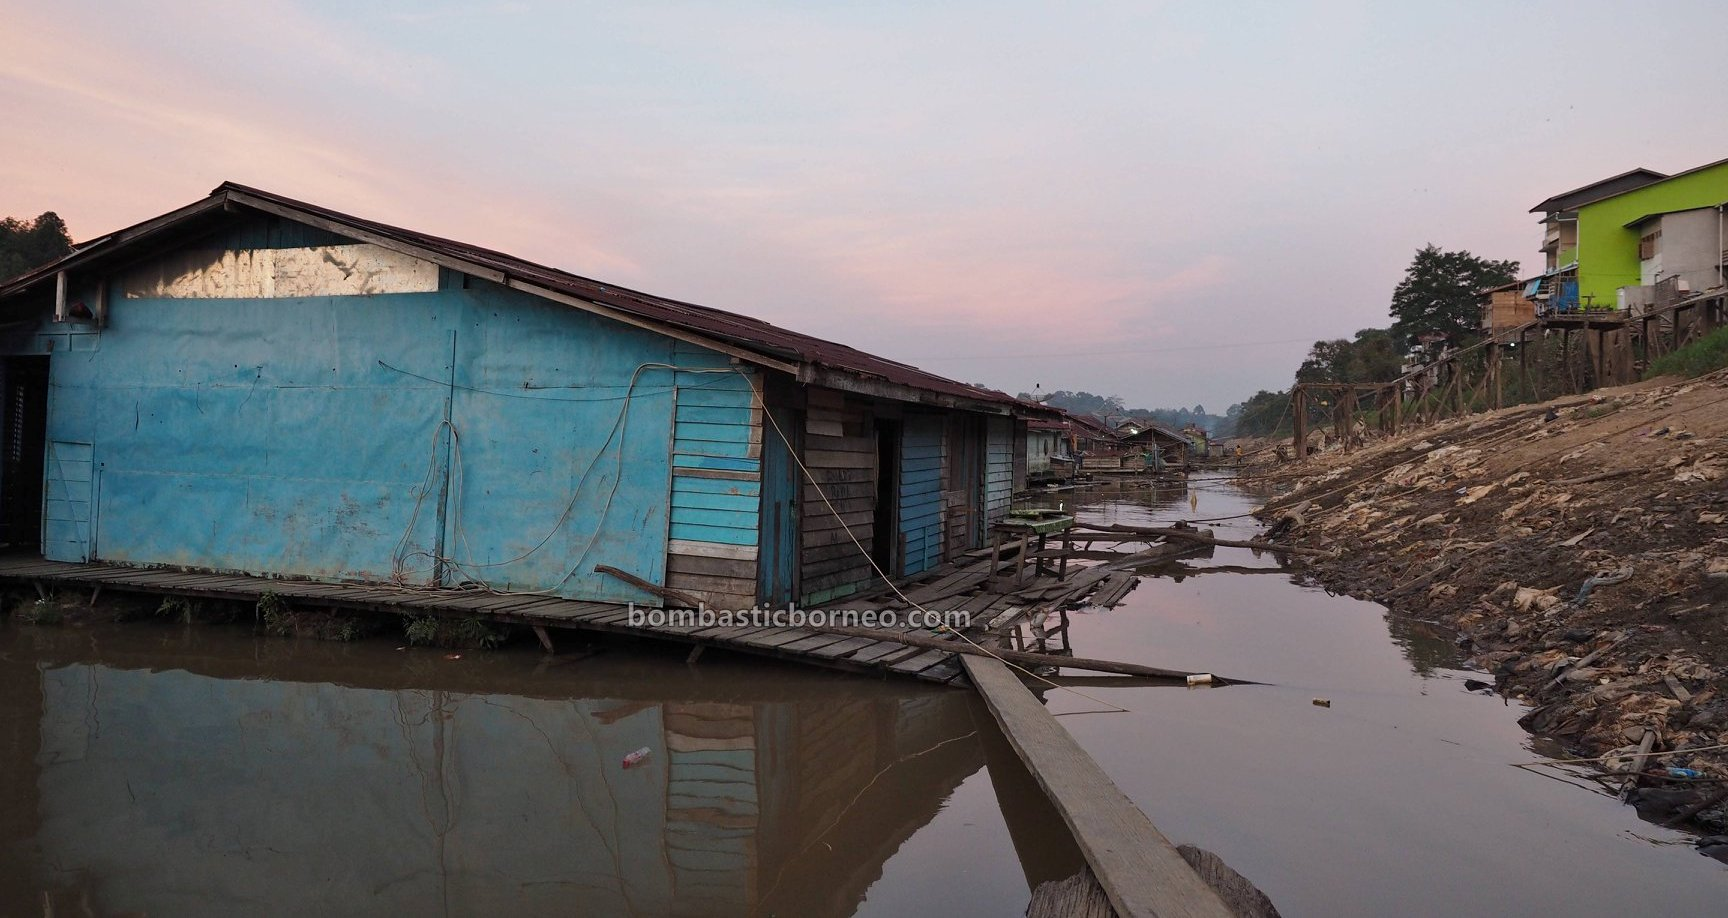 rumah lanting, rumah terapung, floating house, authentic, traditional, destination, Indonesia, Kalimantan Barat, Nanga Pinoh, Sungai Melawi, river, Tourism, tourist attraction, travel guide, Trans Borneo,